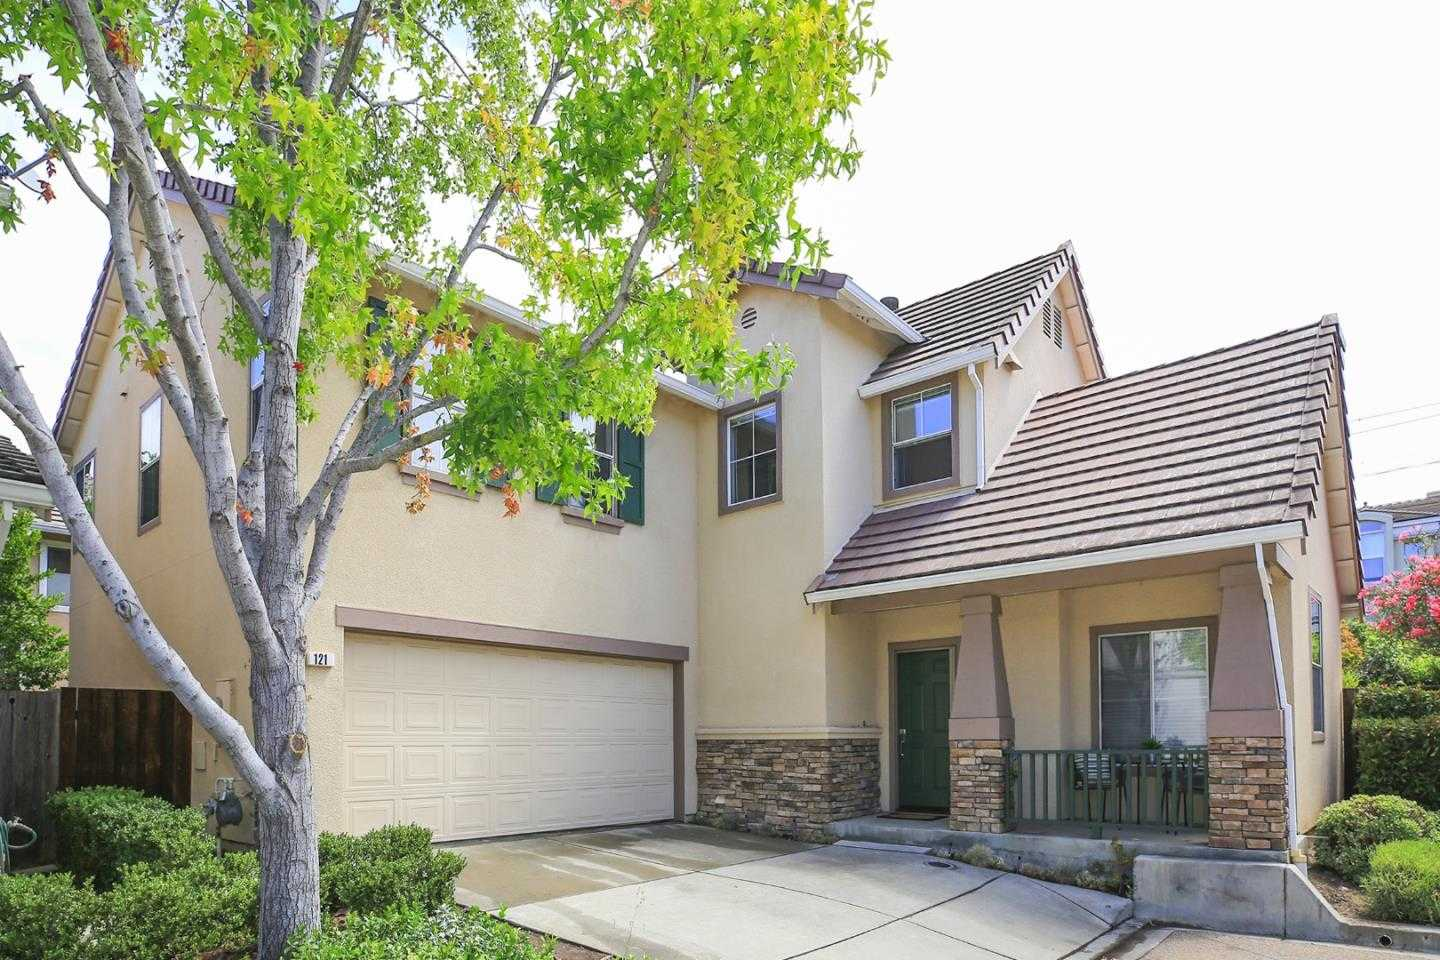 $1,699,000 - 4Br/3Ba -  for Sale in Mountain View